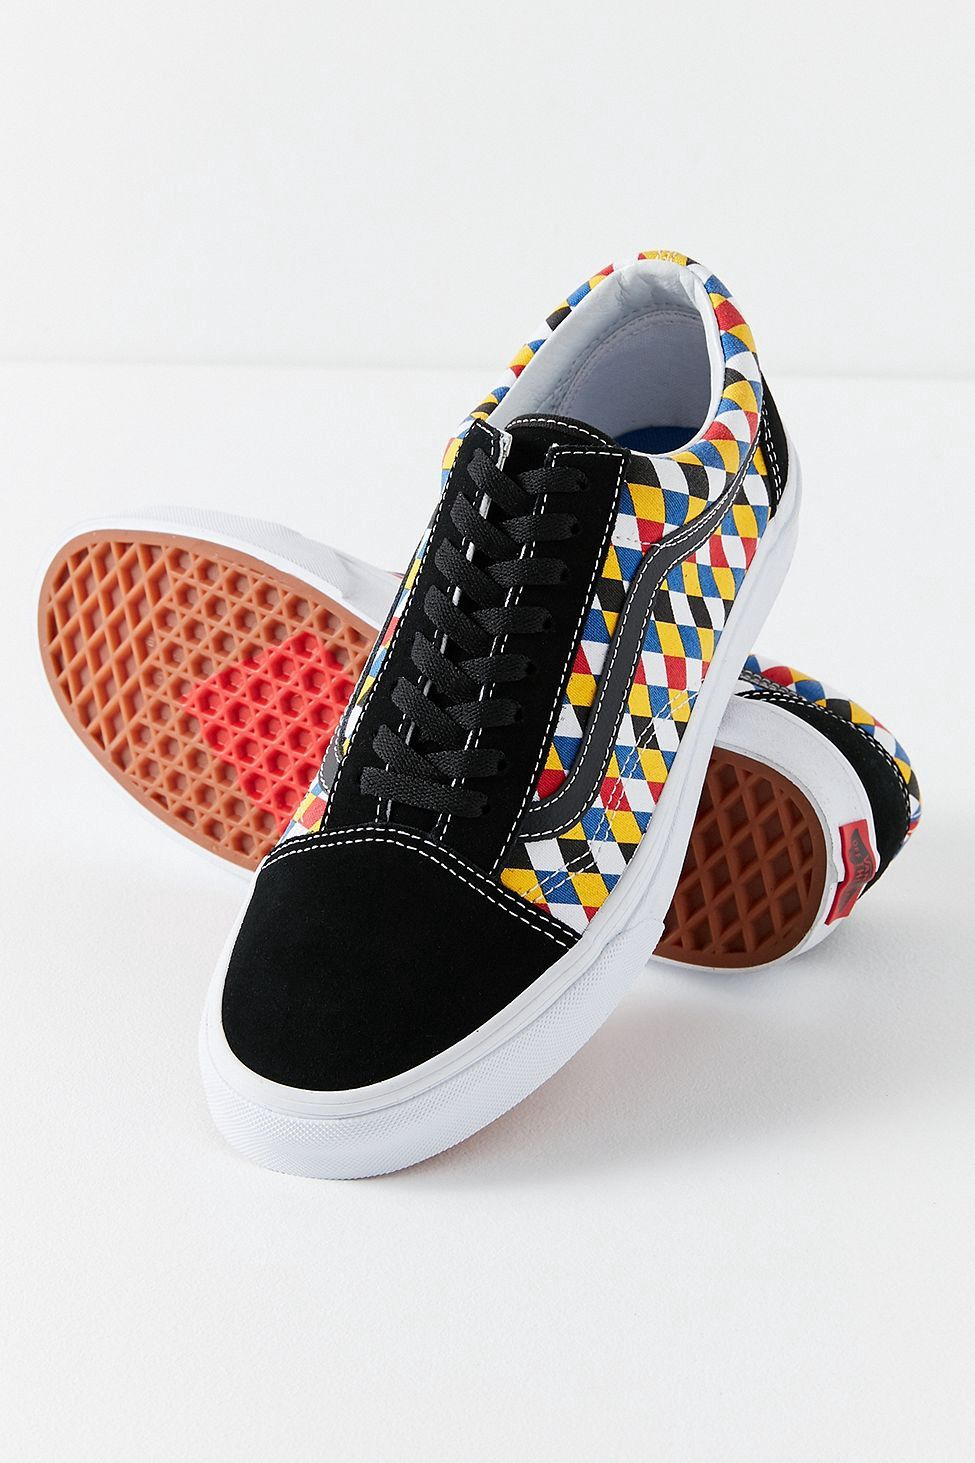 79955c7de6 Urban Outfitters Vans X Uo Old Skool Playing Card Sneaker - W 6.5 M ...